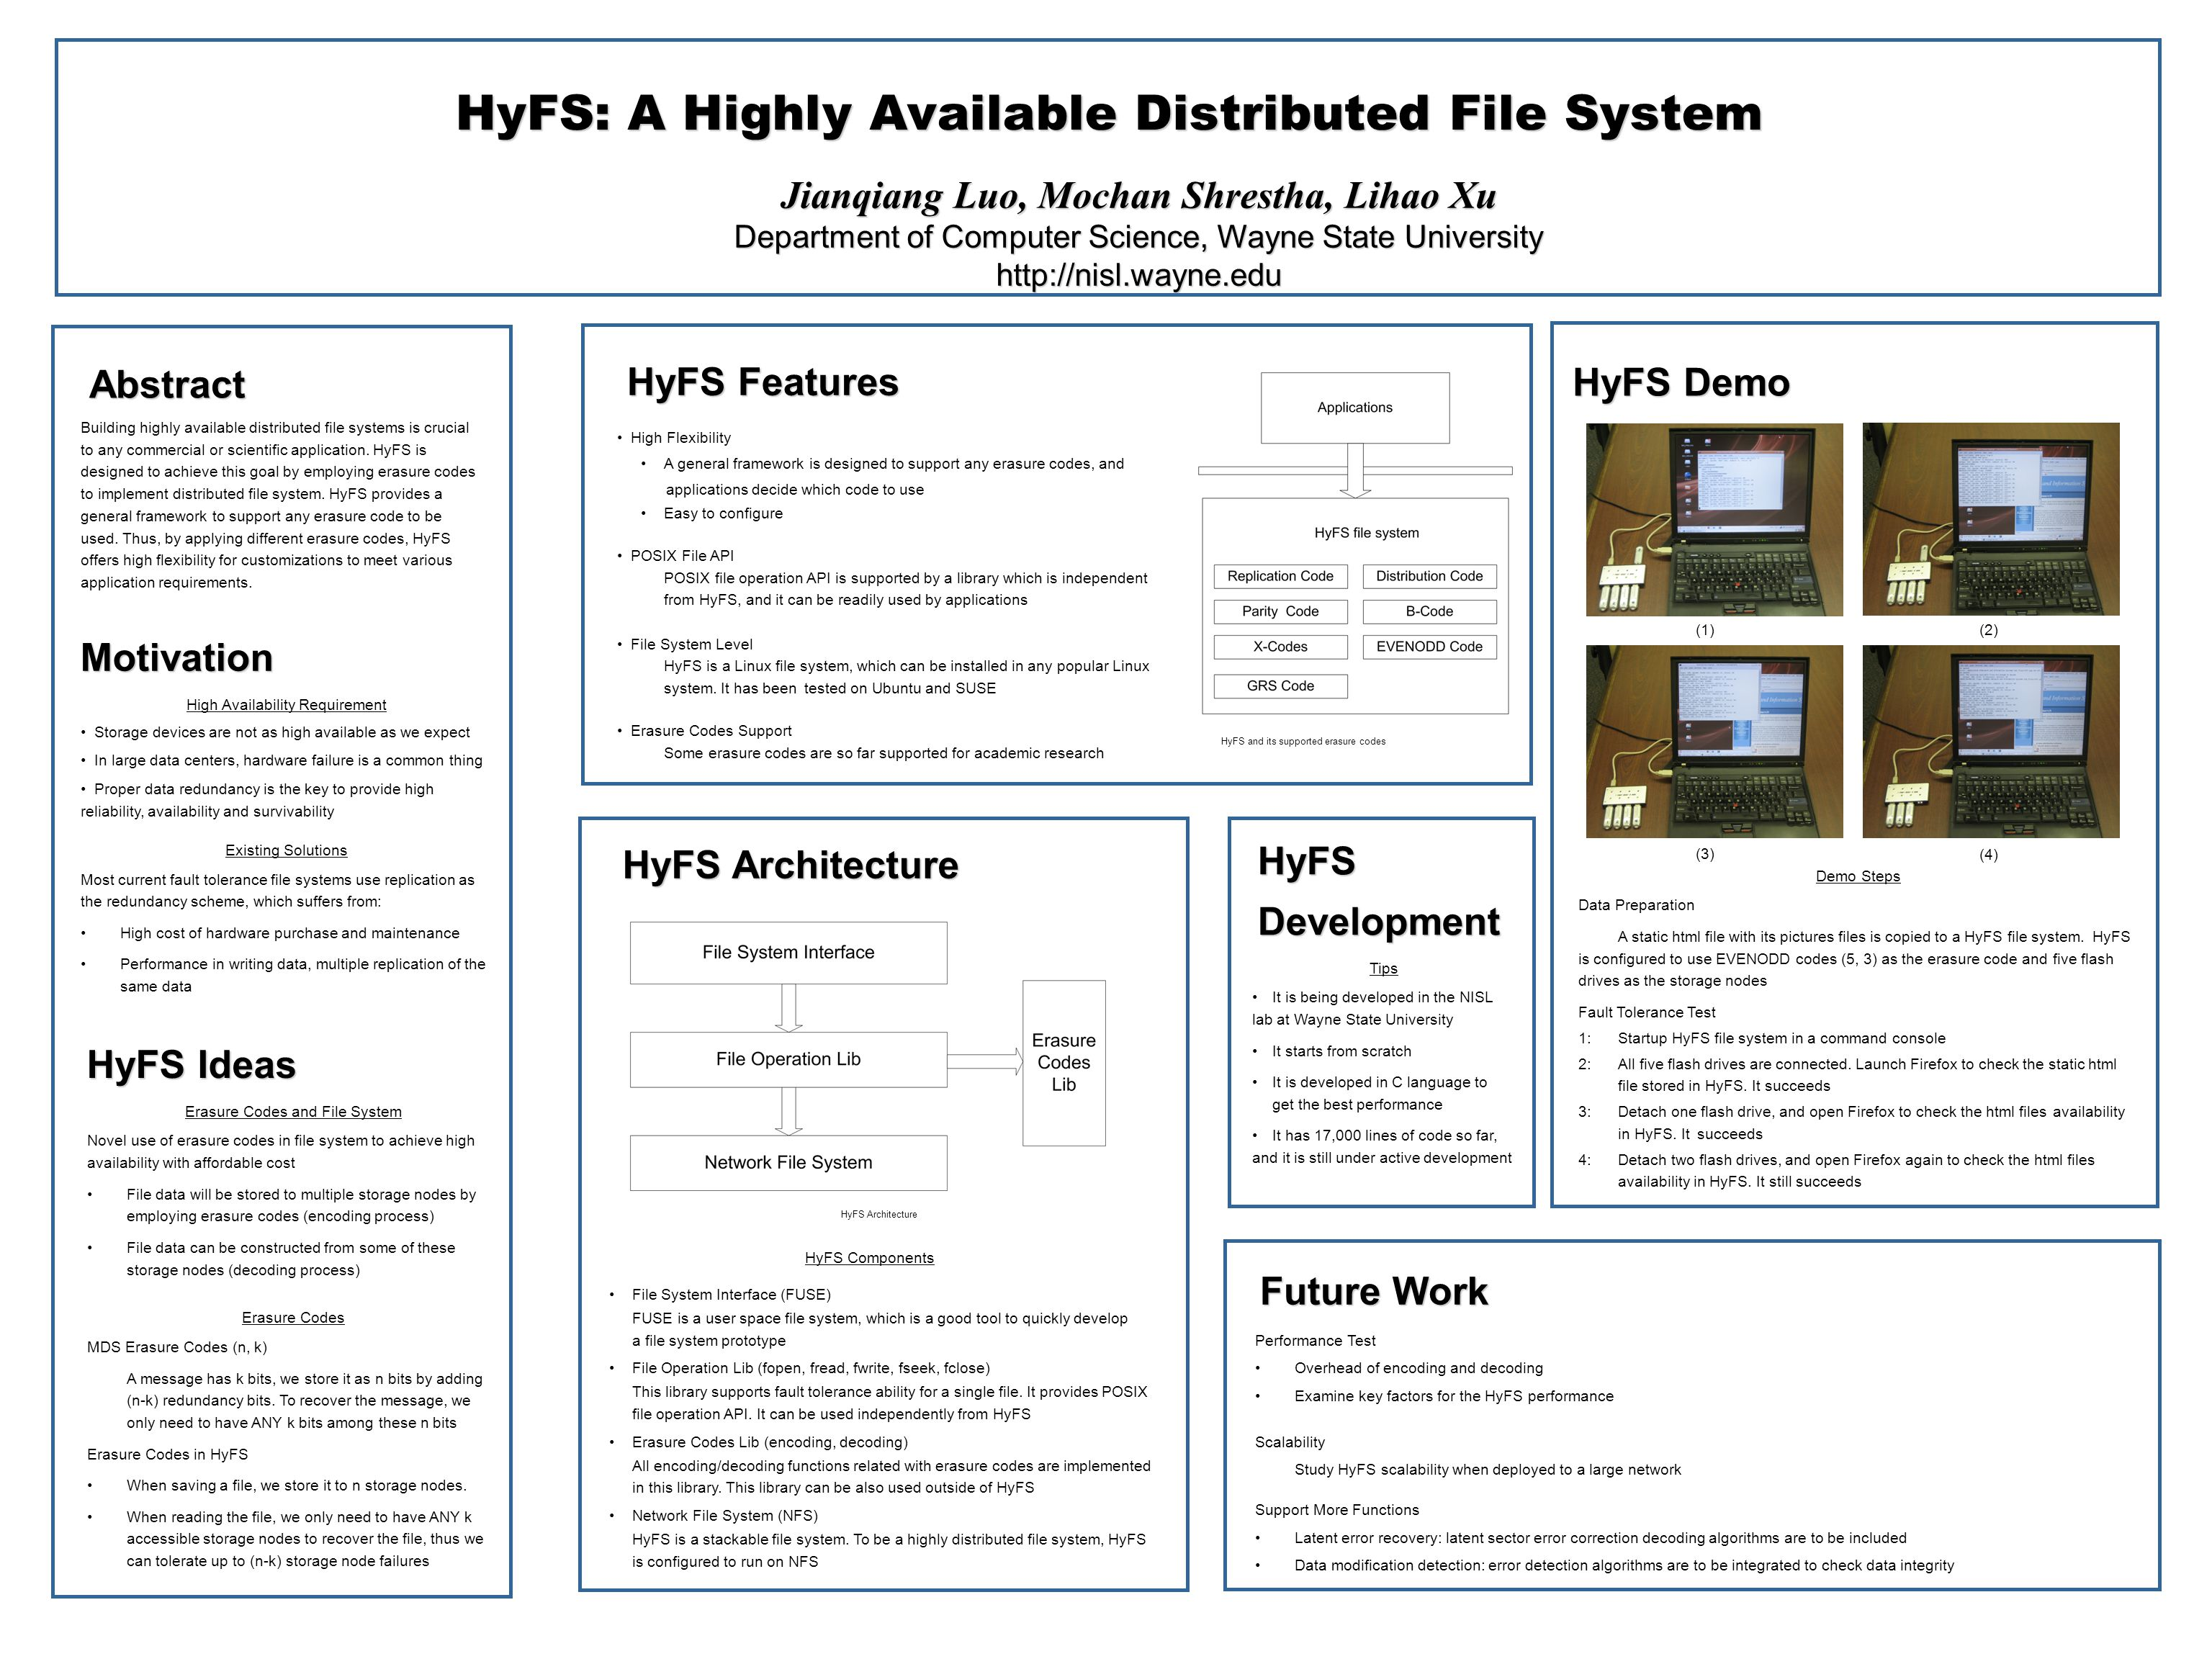 Abstract HyFS: A Highly Available Distributed File System Jianqiang Luo, Mochan Shrestha, Lihao Xu Department of Computer Science, Wayne State University http://nisl.wayne.edu Motivation HyFS Architecture HyFS Components File System Interface (FUSE) FUSE is a user space file system, which is a good tool to quickly develop a file system prototype File Operation Lib (fopen, fread, fwrite, fseek, fclose) This library supports fault tolerance ability for a single file.